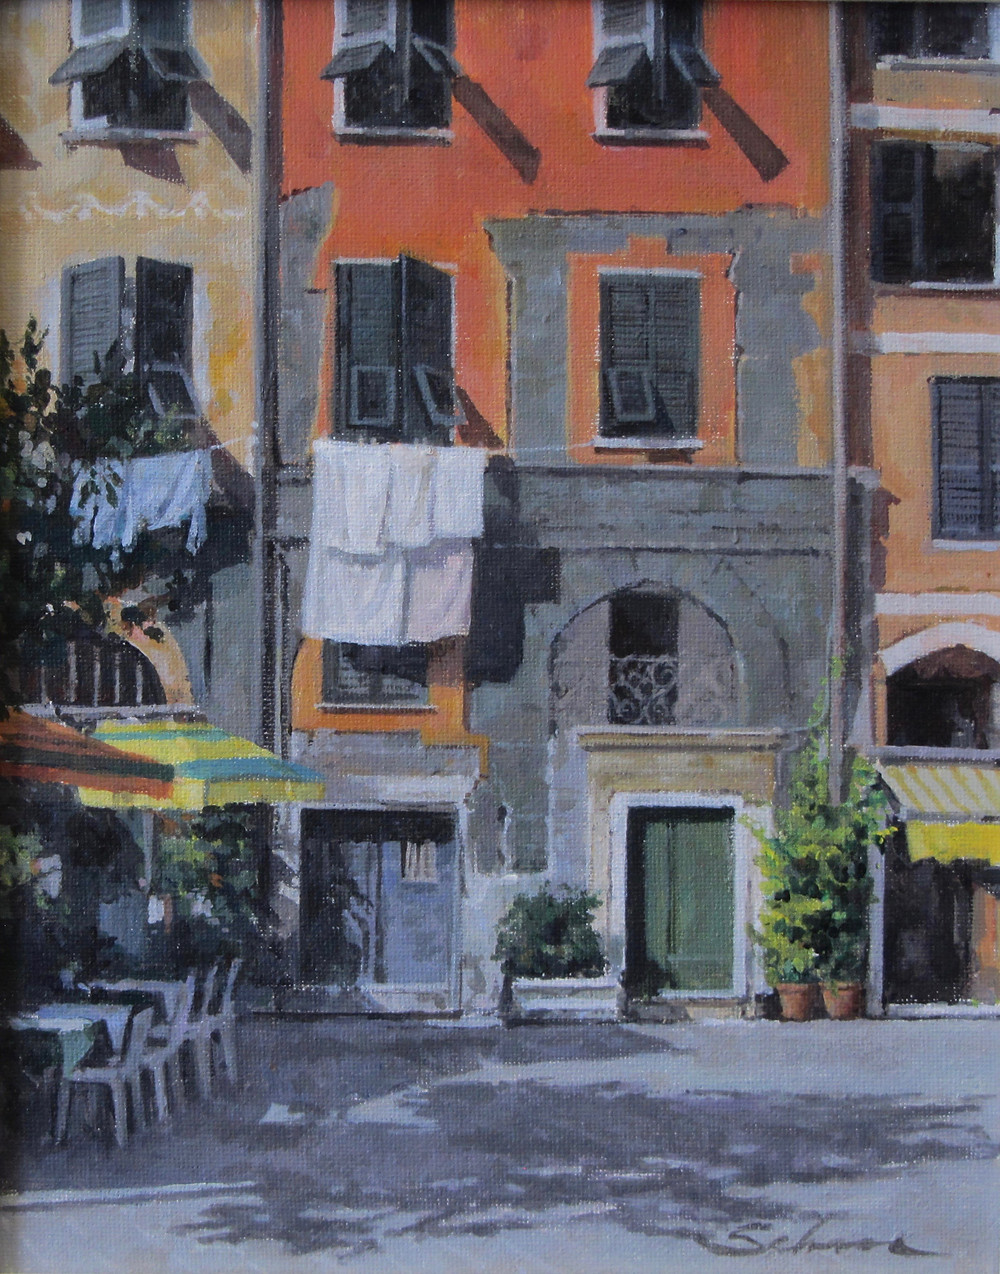 Green Door, Italy (Original-acrylic on canvas)